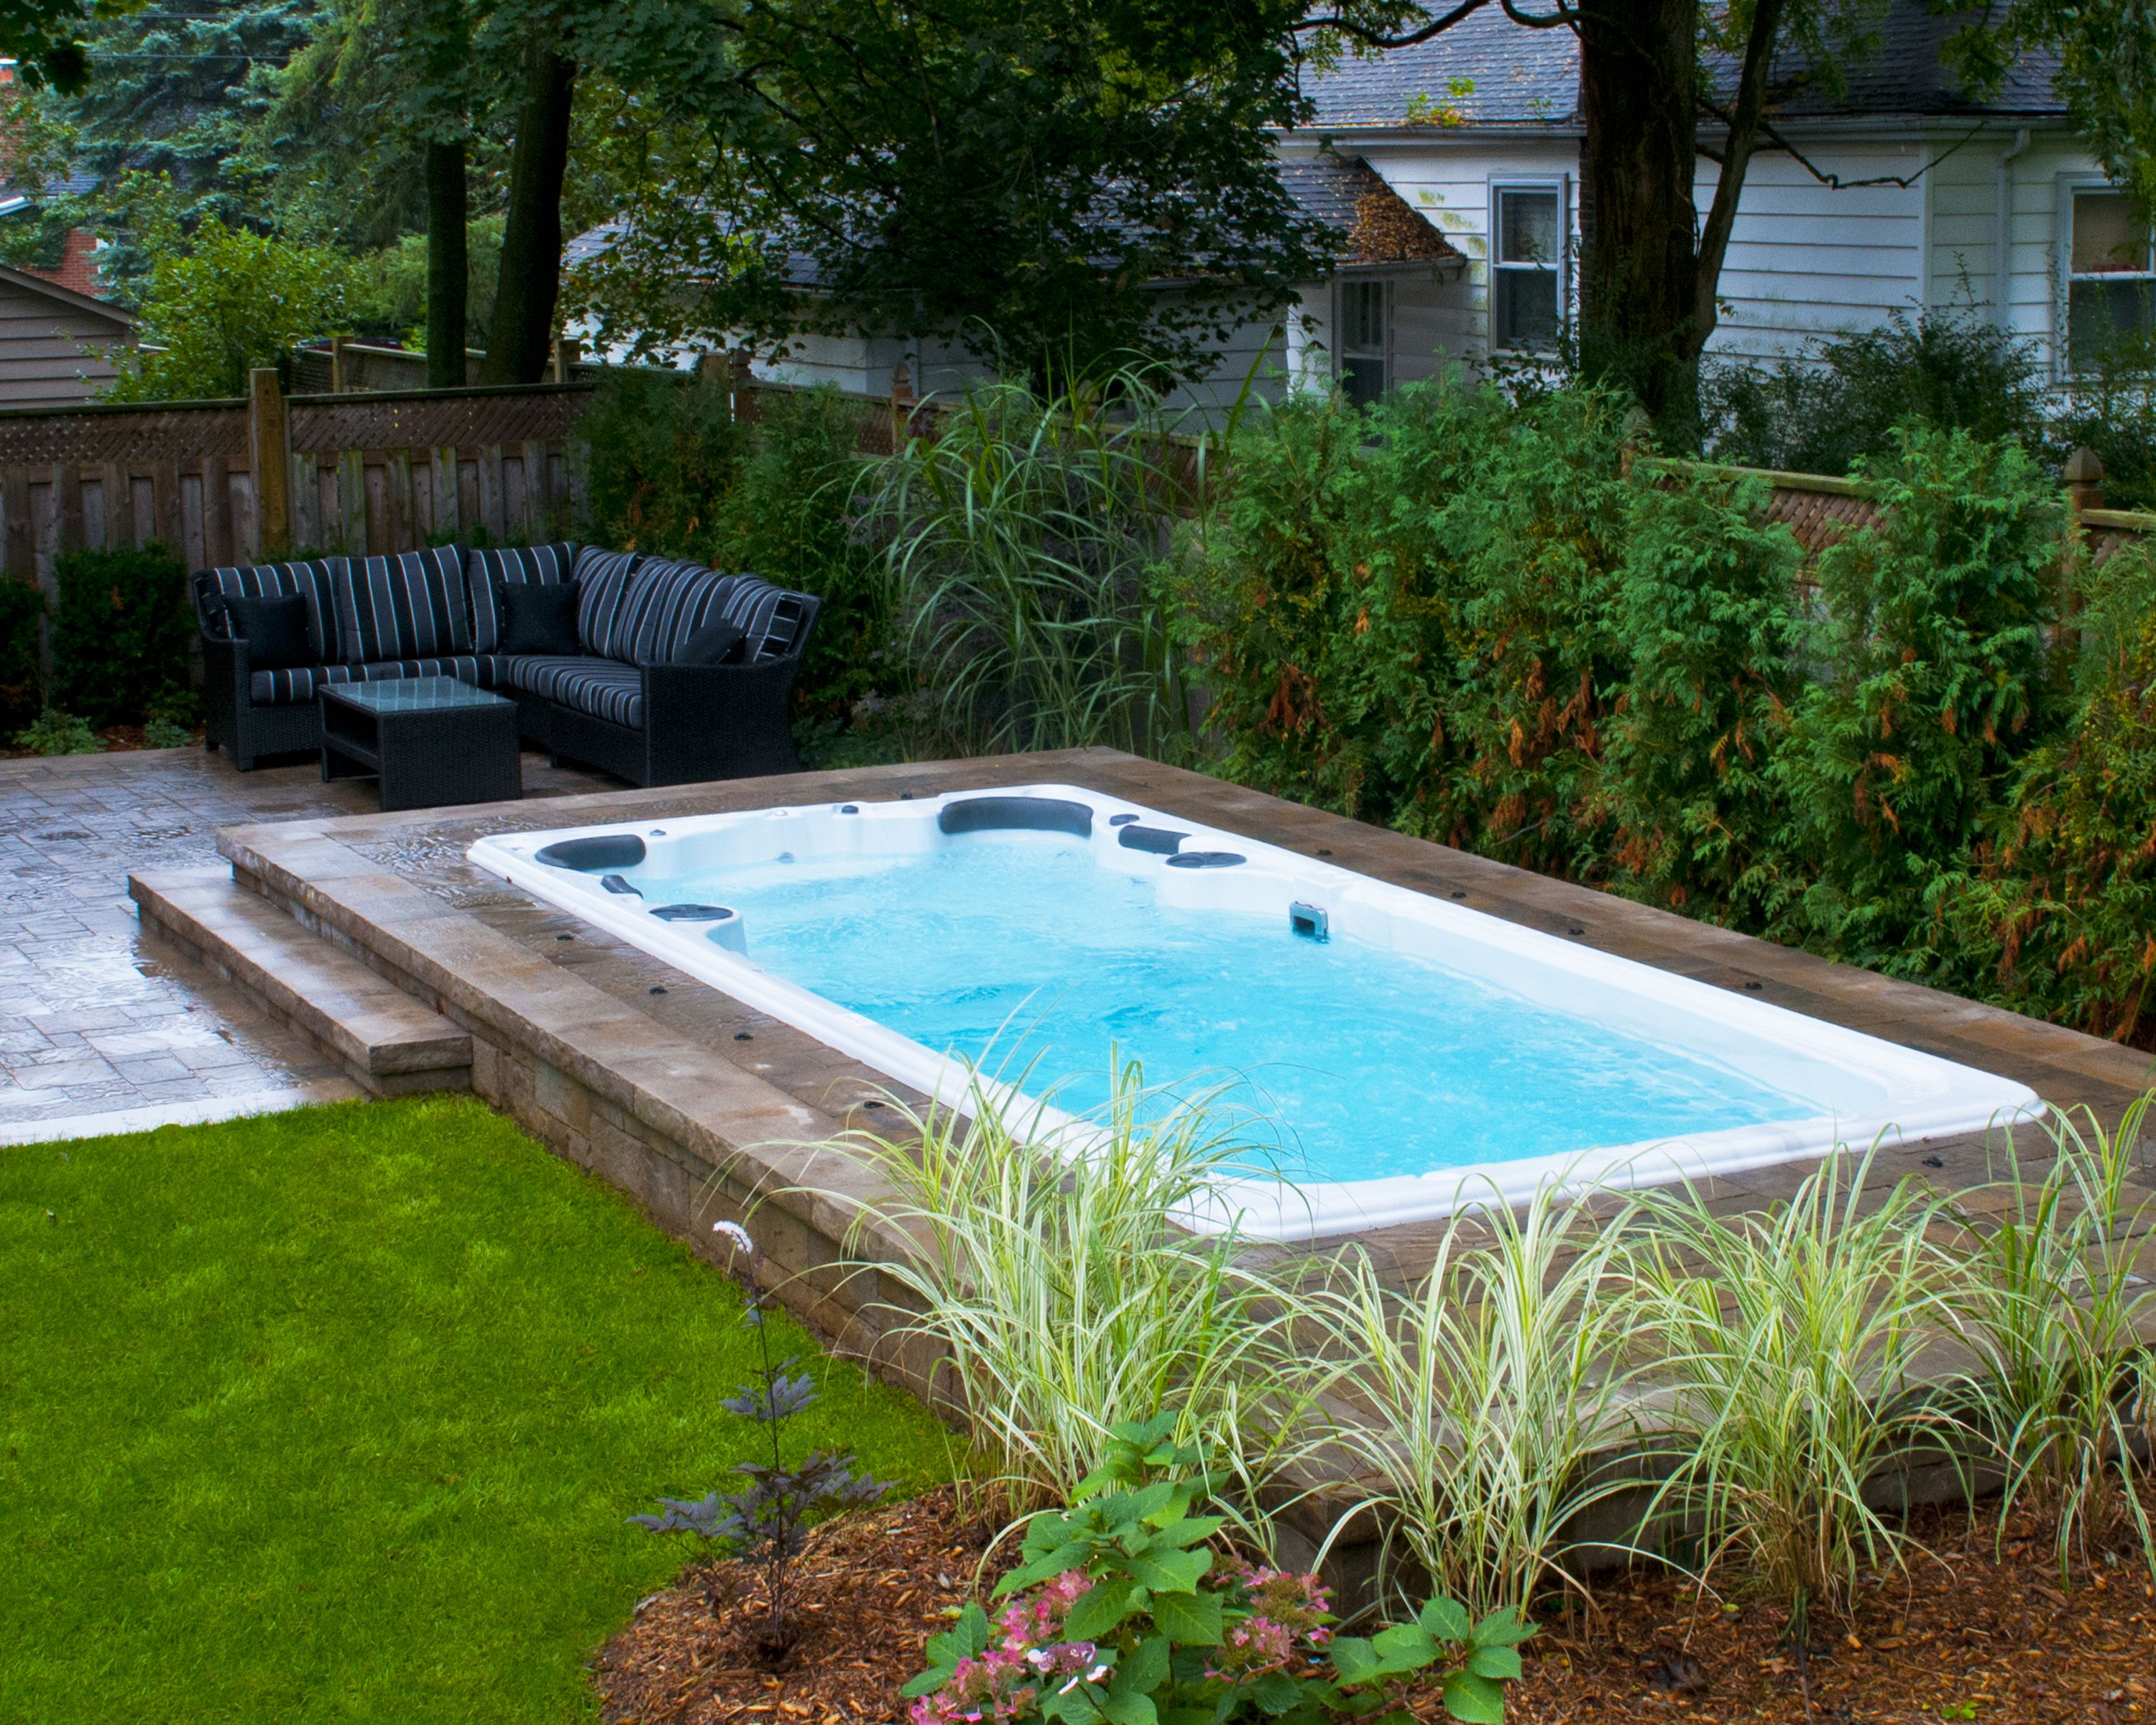 Hydropool Self Cleaning Swim Spa Installed In Ground With Stone